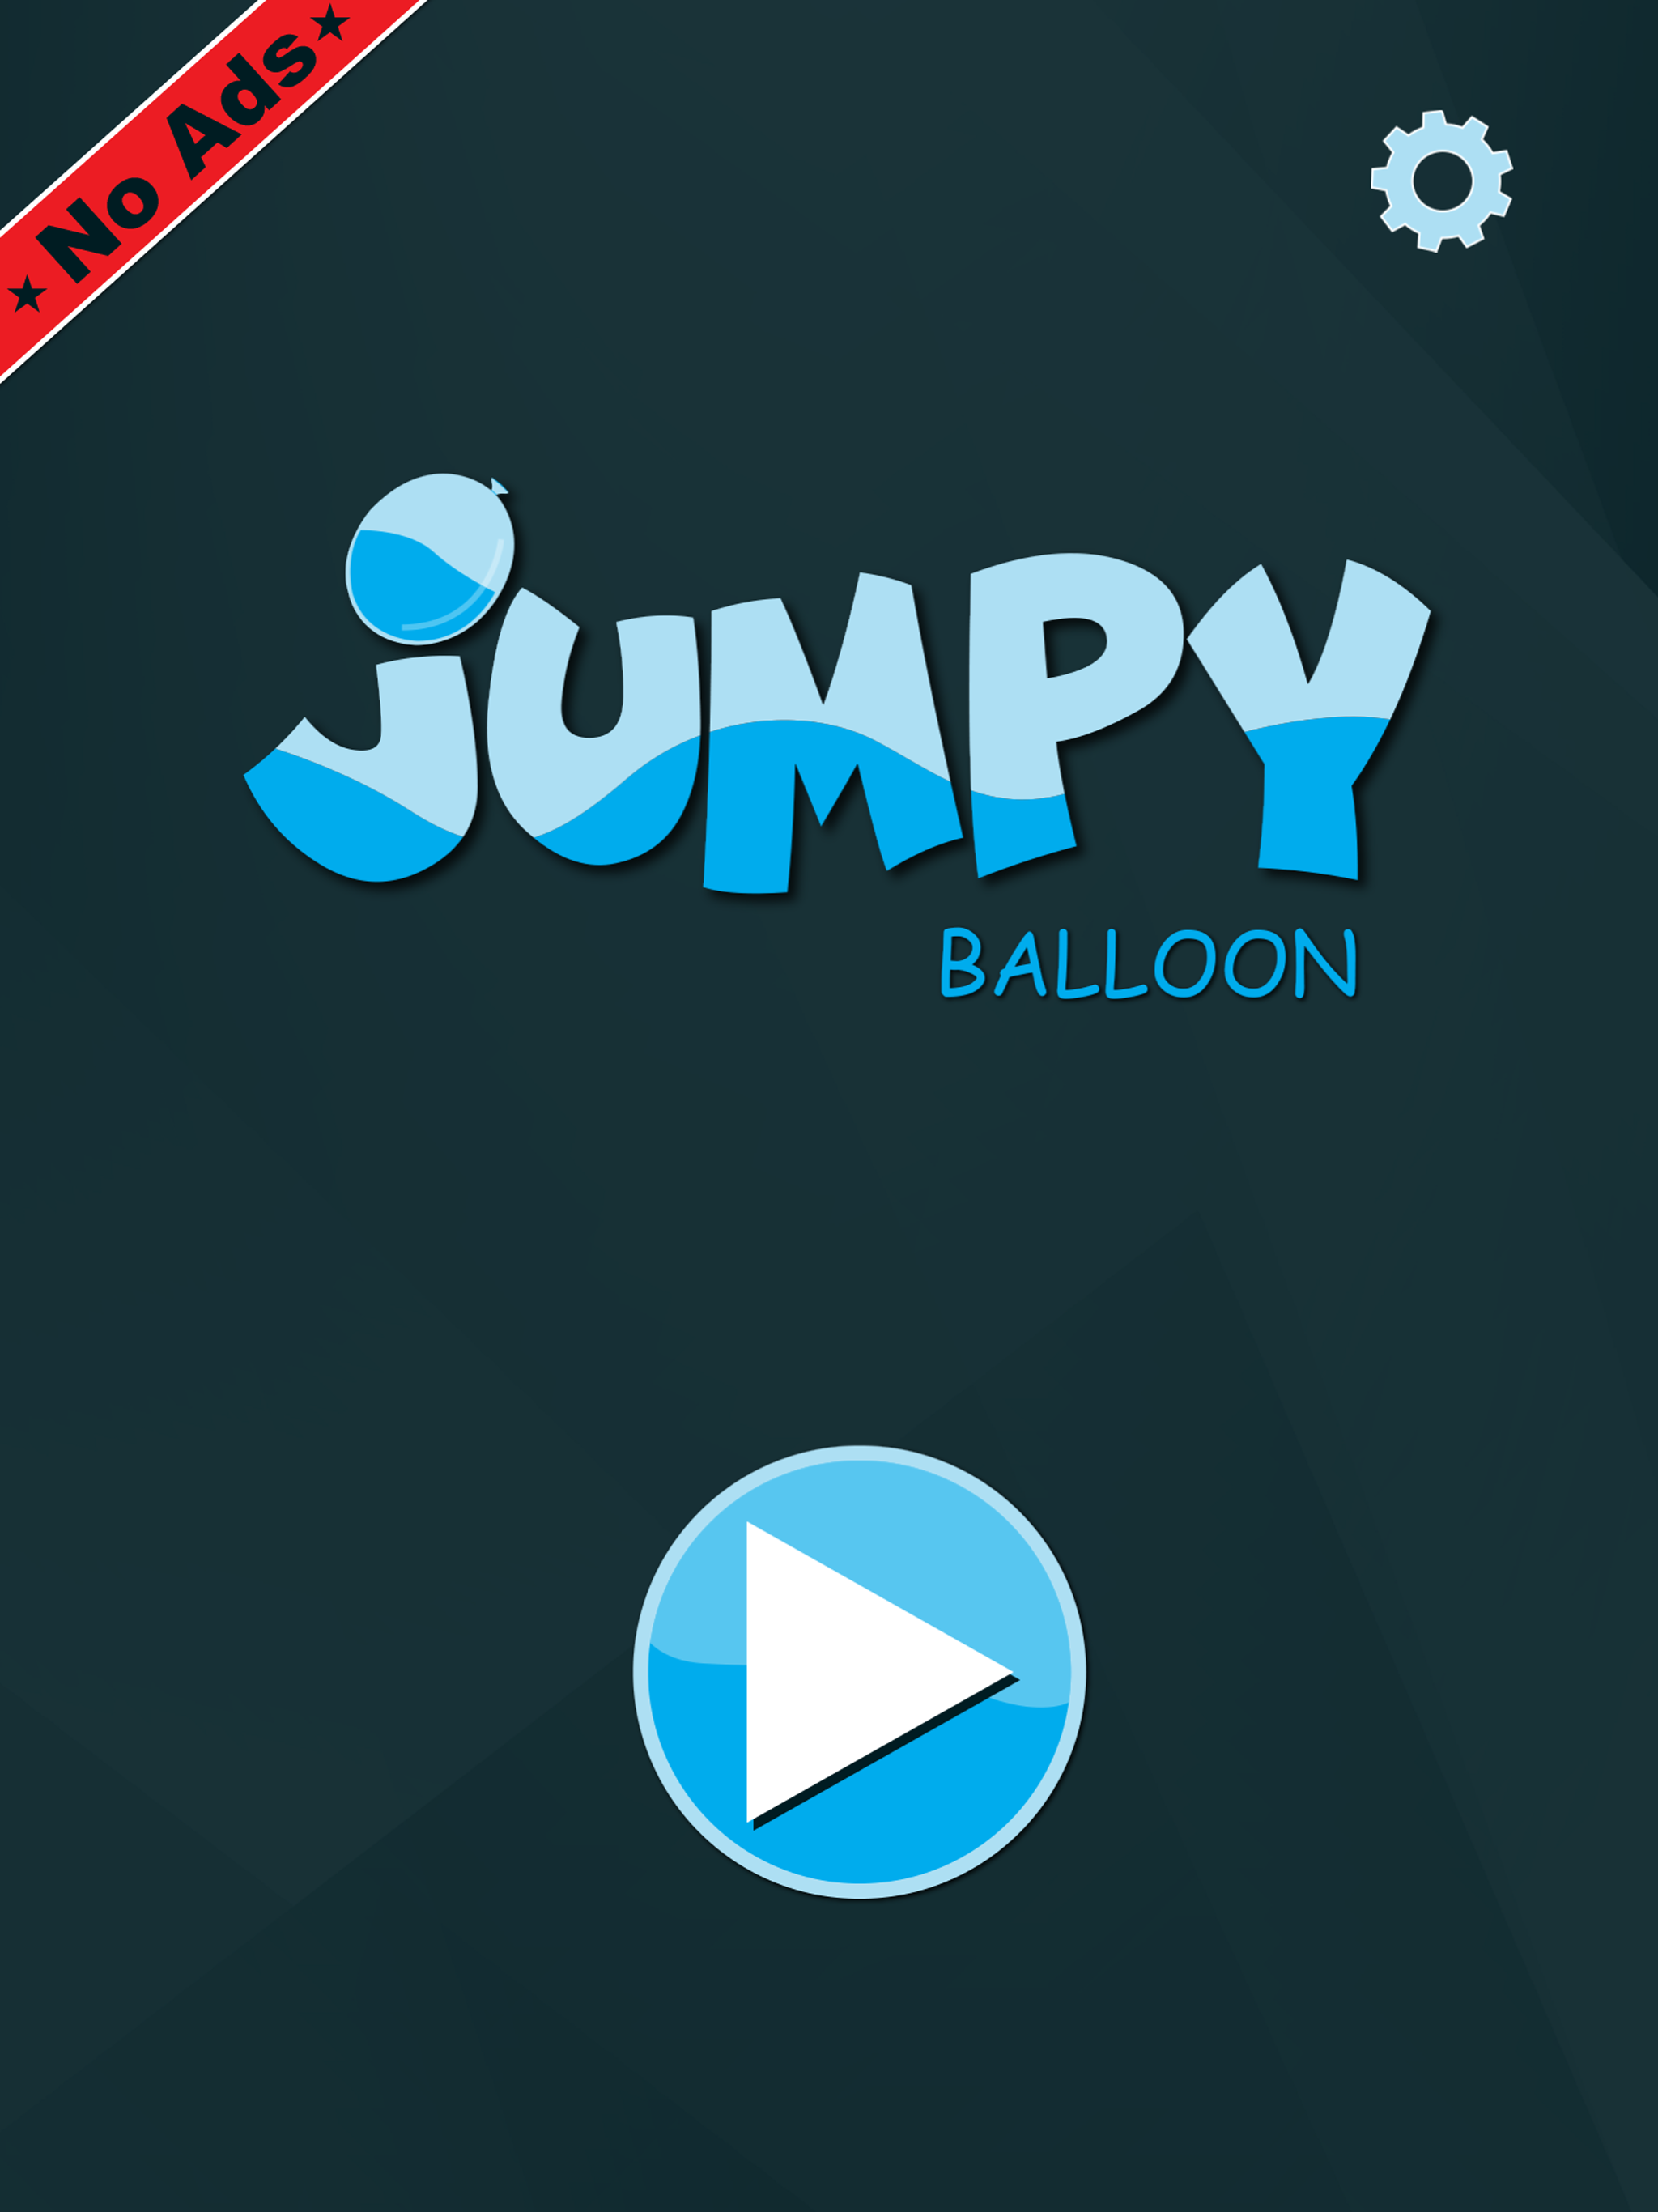 Jumpy Balloon